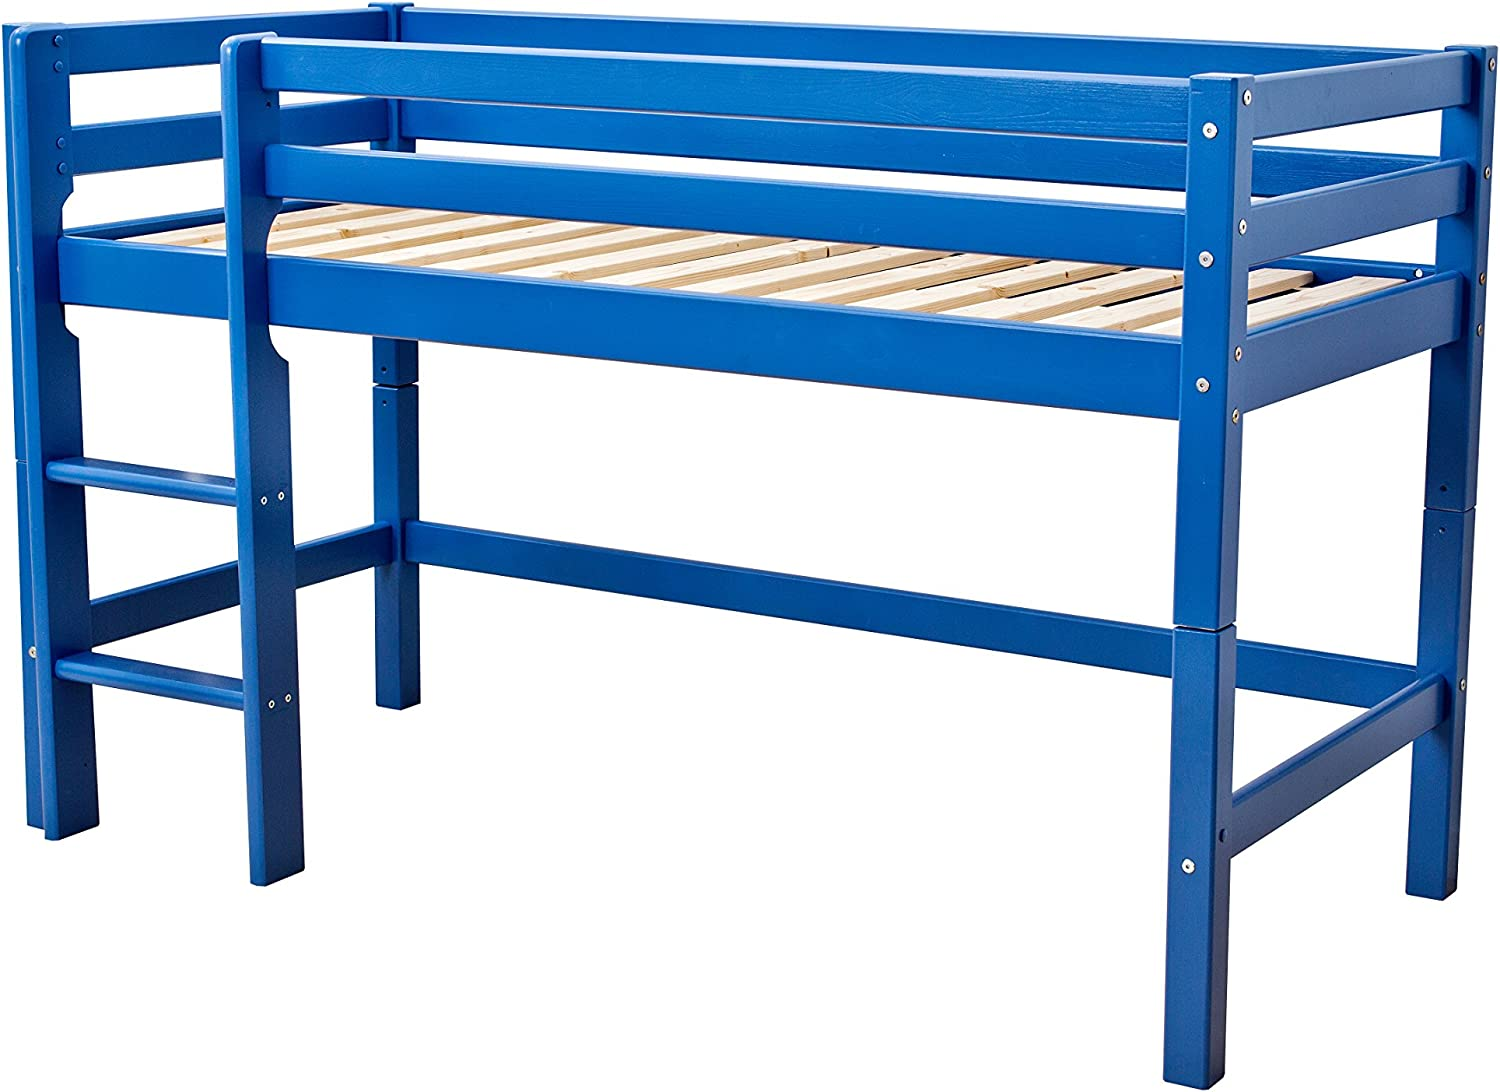 Hoppekids halfhigh, Play, Cabin Bed, mid Sleeper, Solid Pinewood, 90 x 200 cm, bluee, Wood, Single